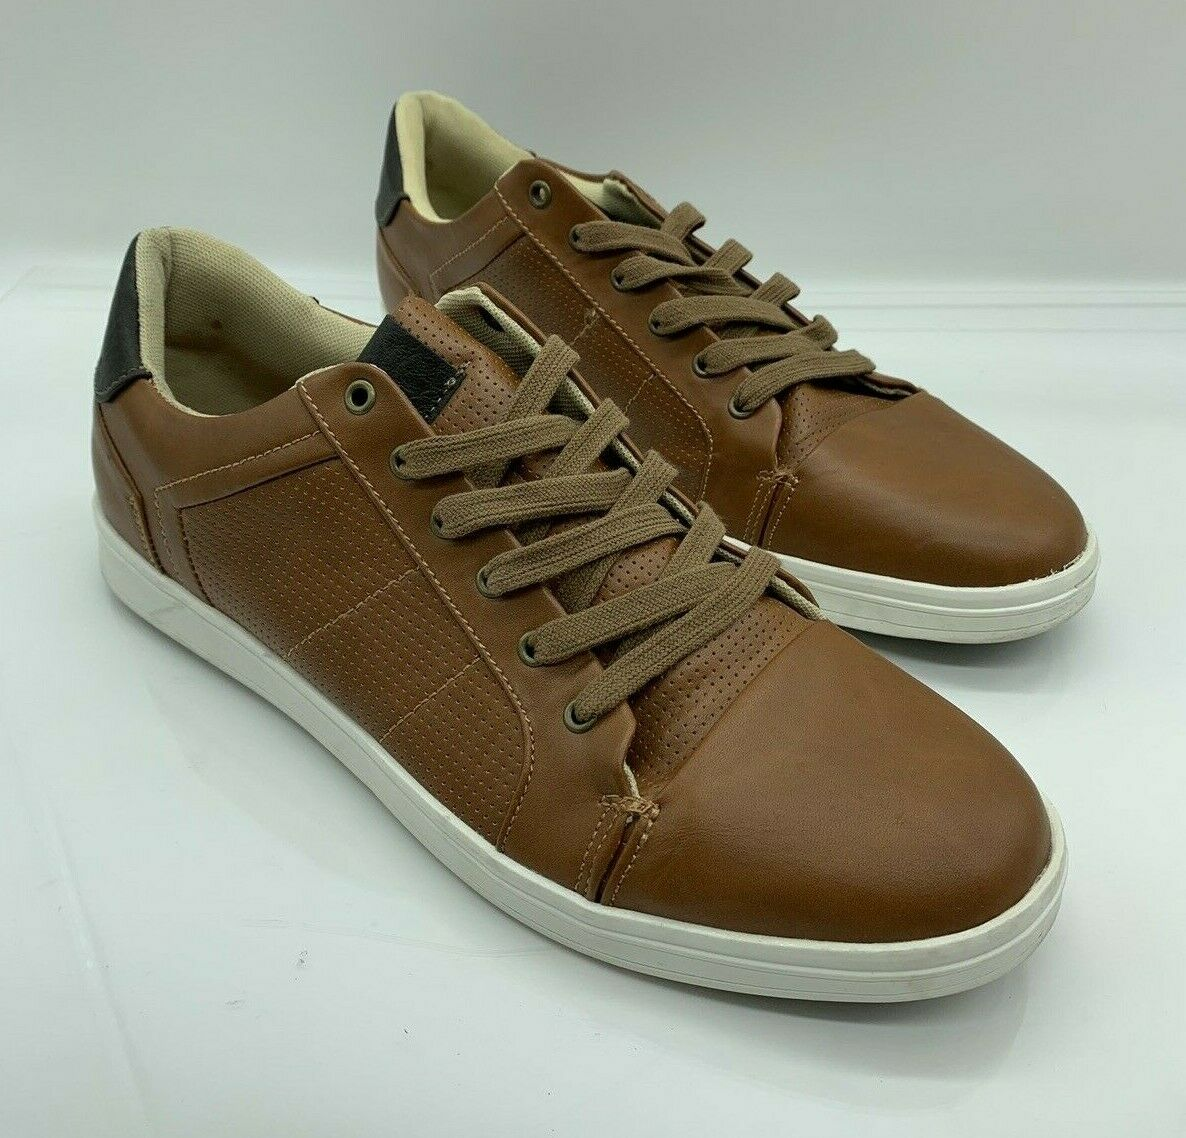 Goodfellow & Co. Men's Eddie Casual Lace Up Sneakers Tan US 12M # S-23